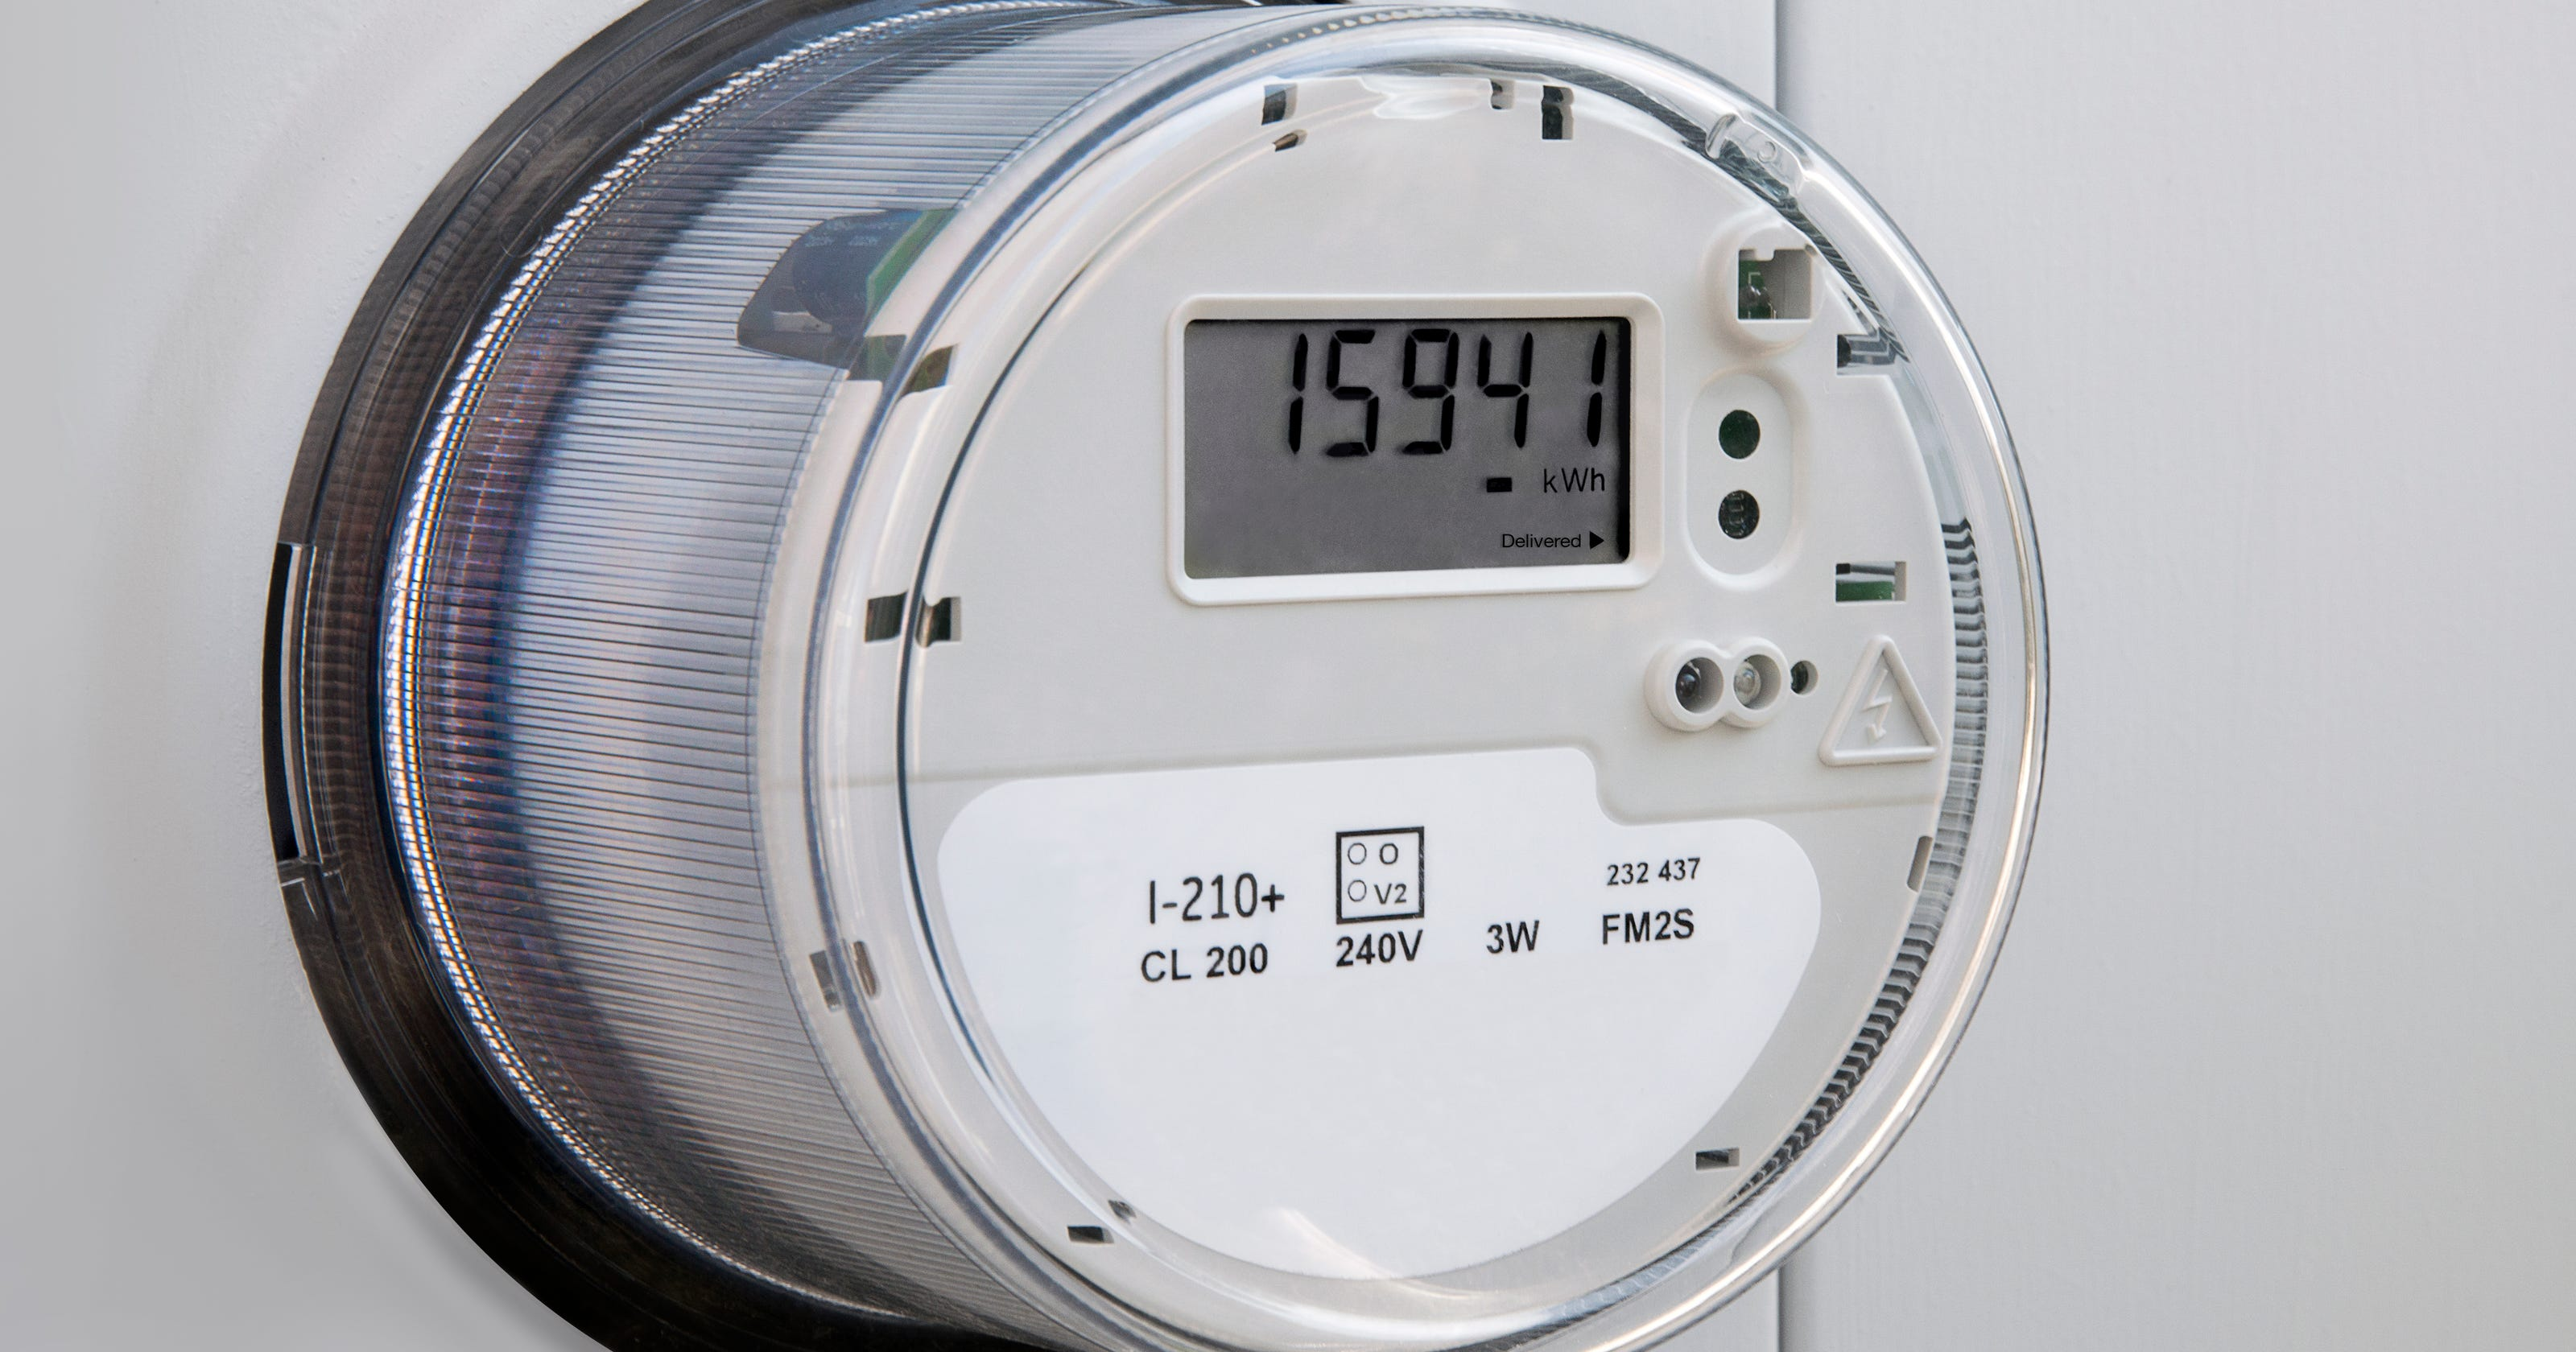 New Nyseg Plan Pay More At Peak Times Electronic Meter Utility Project